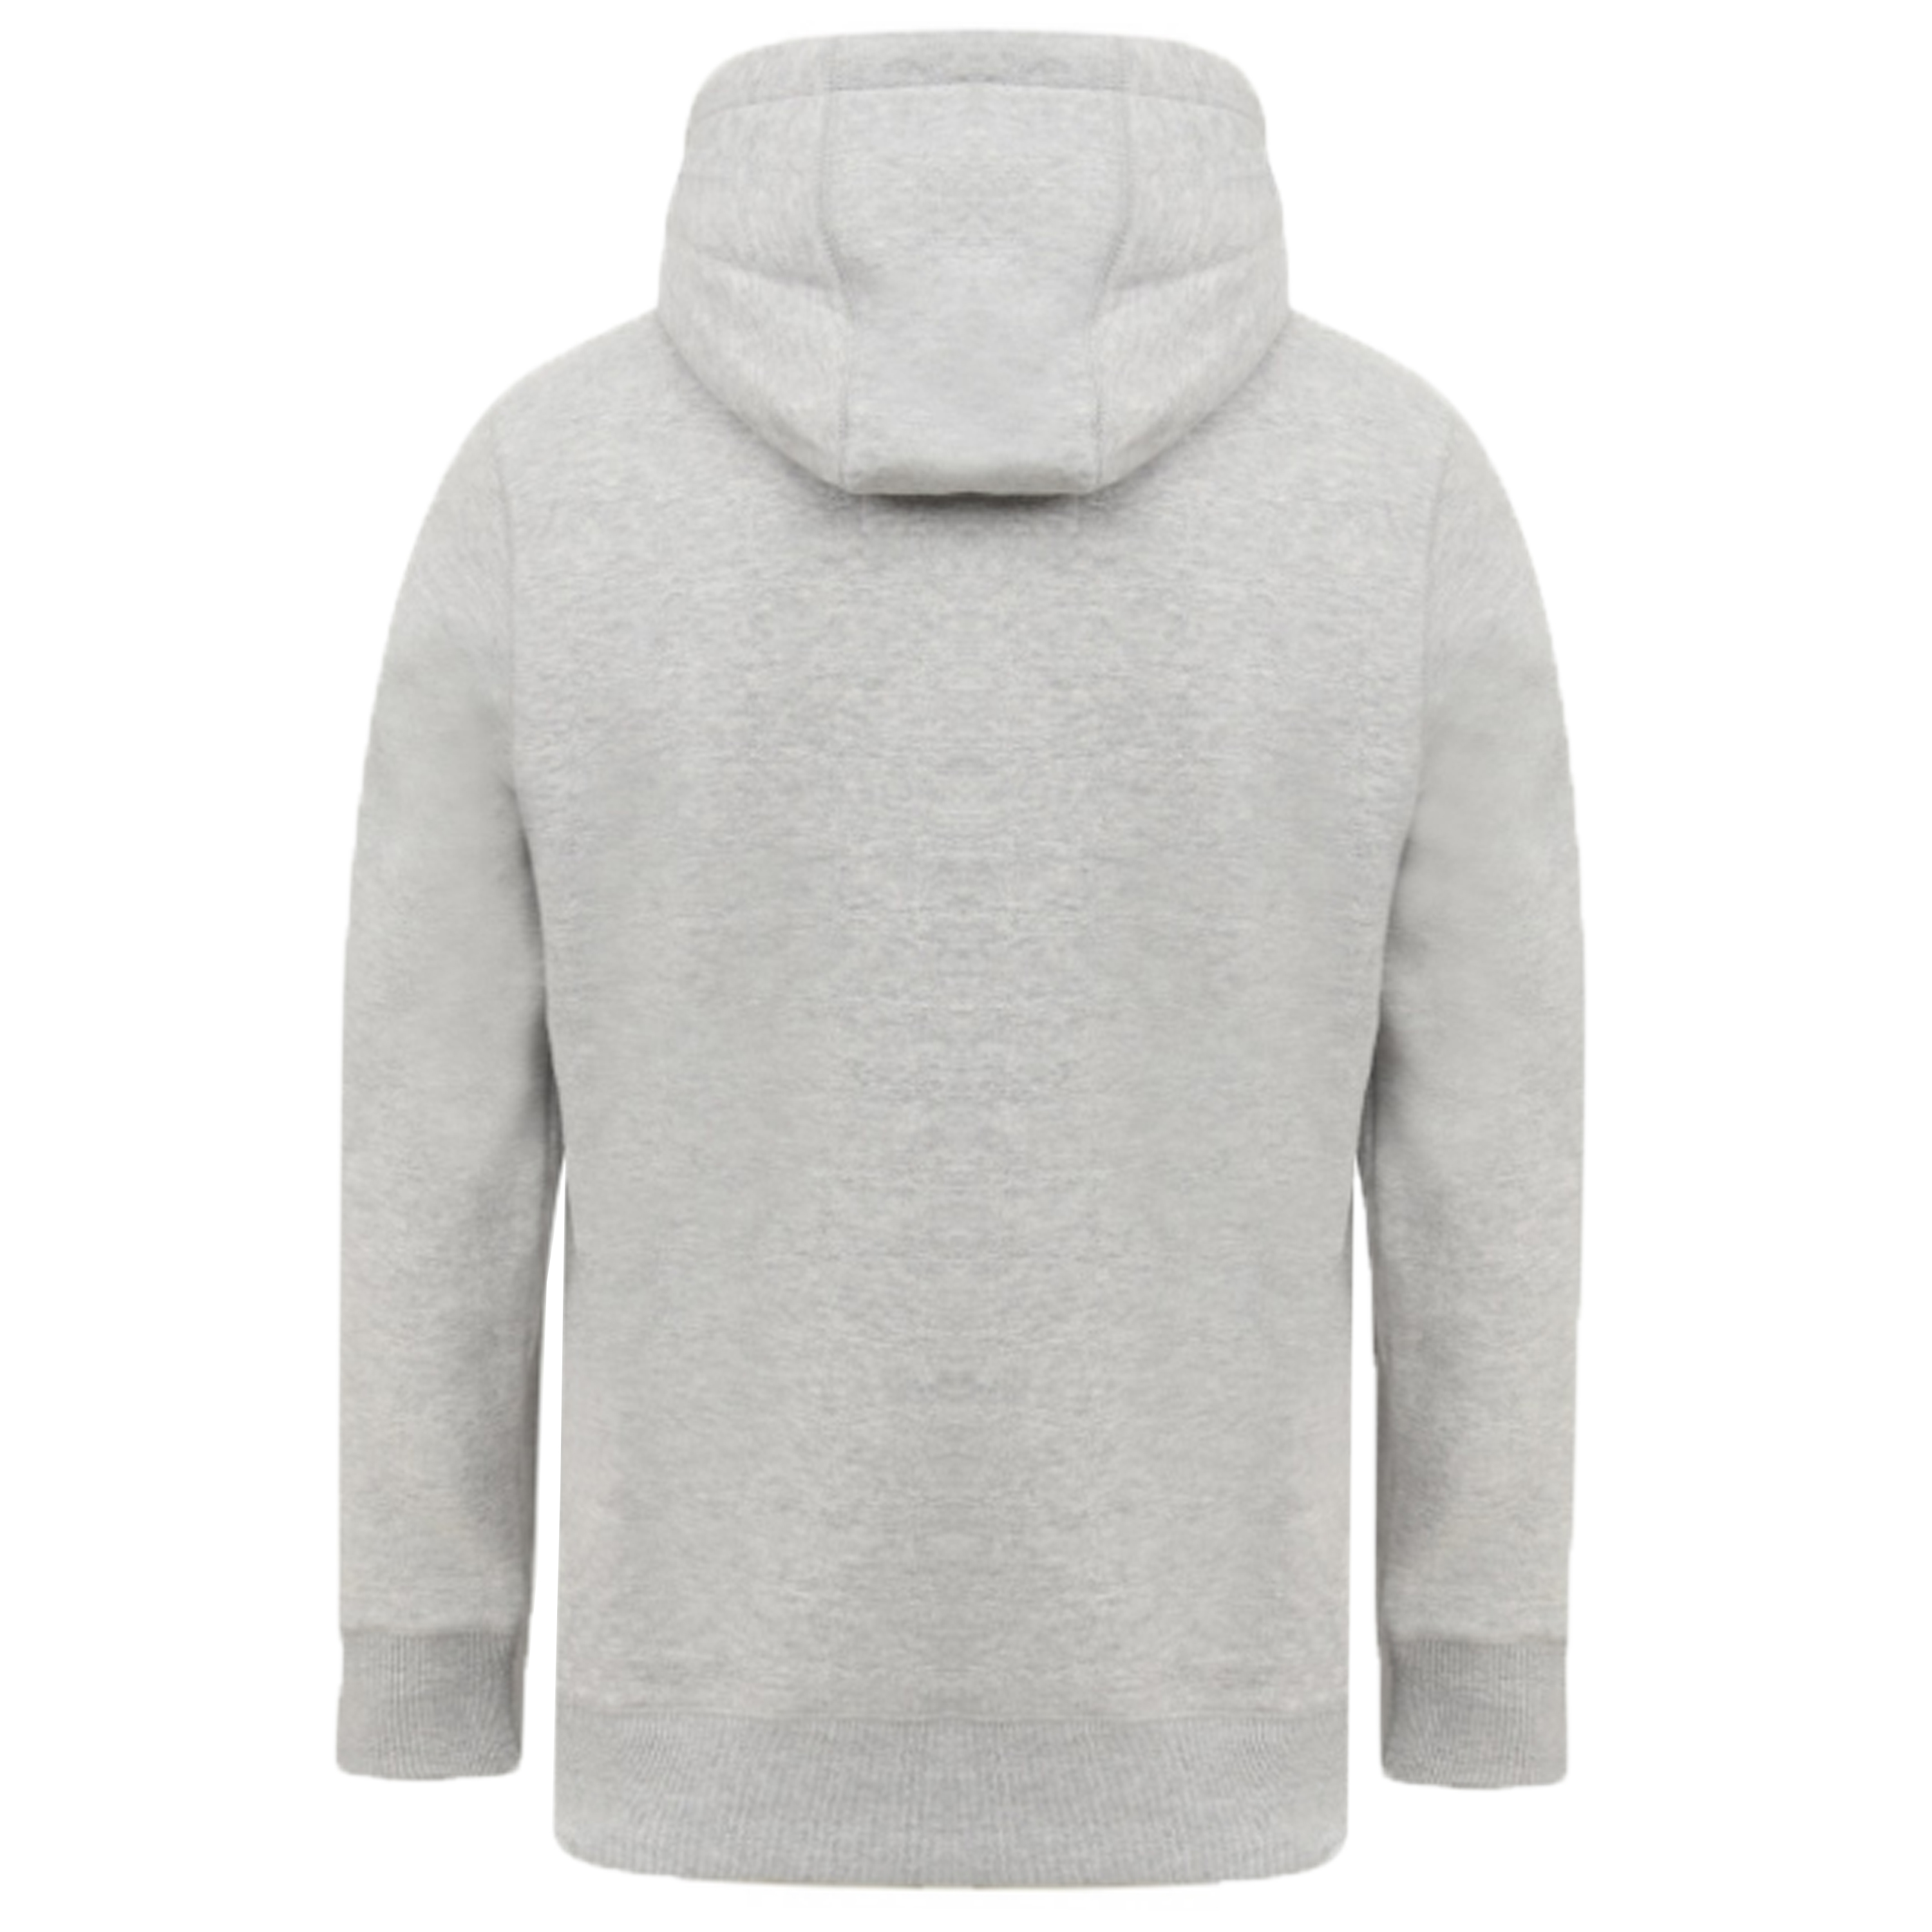 Mens-Sweatshirt-Tokyo-Laundry-Sherpa-Fleece-Hooded-Top-Pullover-Winter-Fashion thumbnail 8